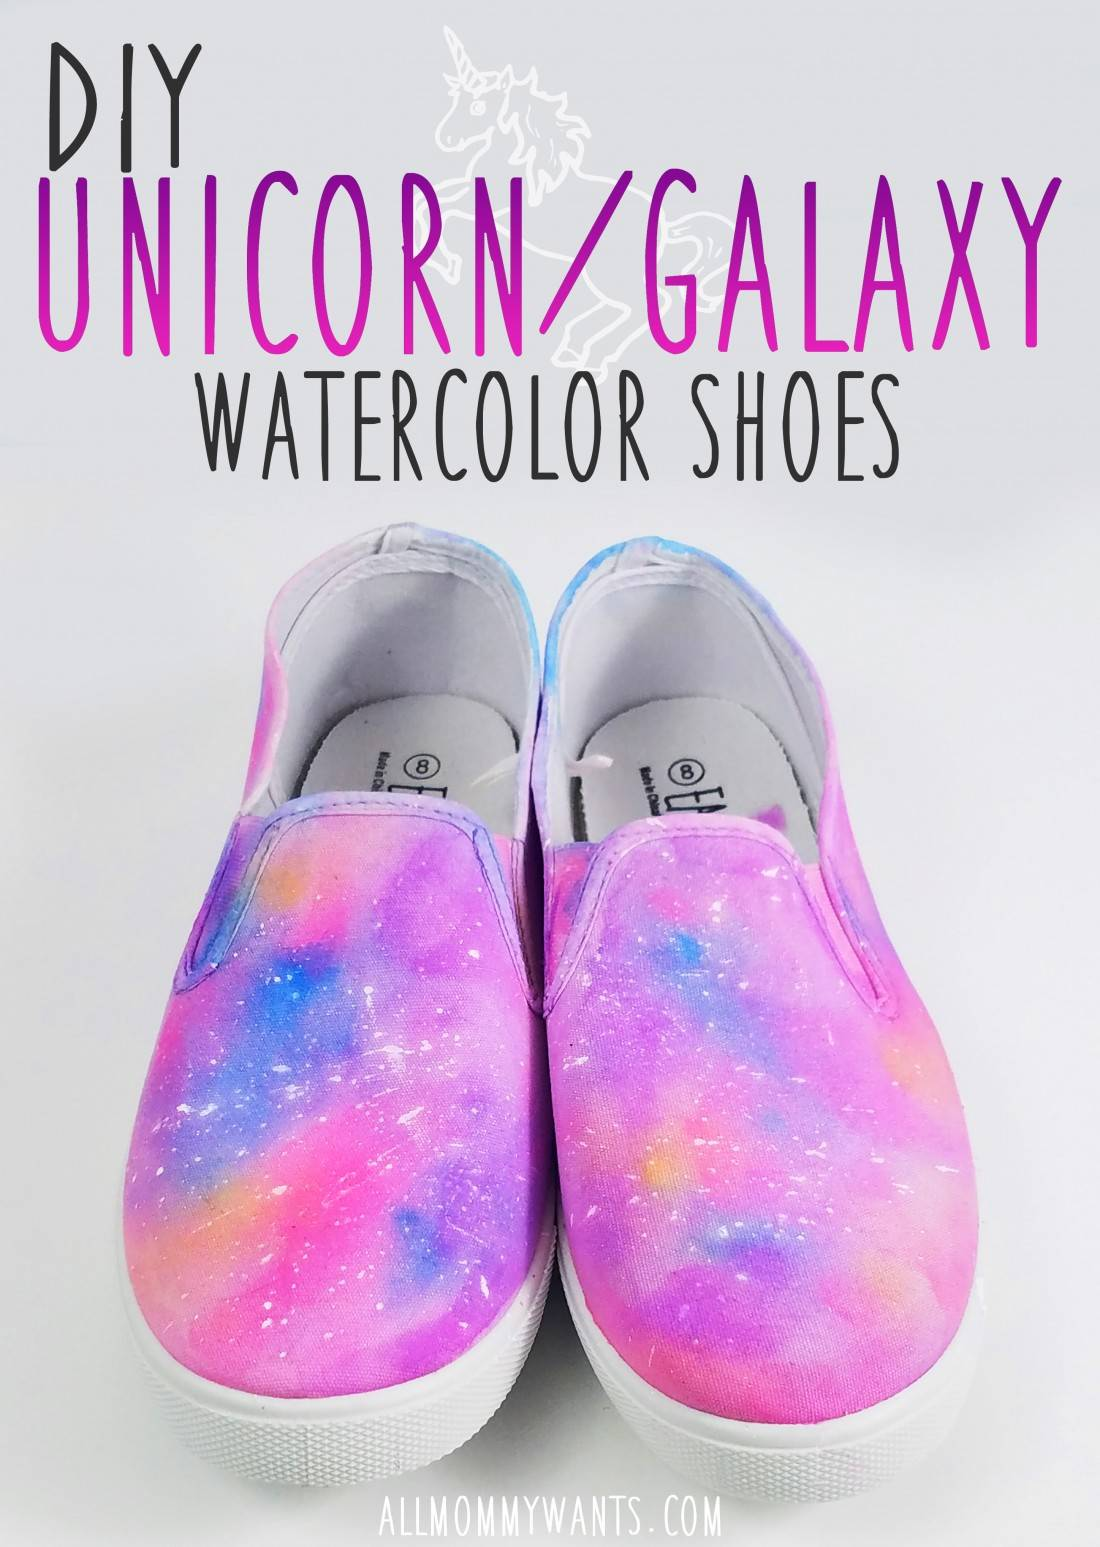 Who loves UNICORNS? These DIY Unicorn Galaxy Watercolor shoes will rock your world - here's how to make them!